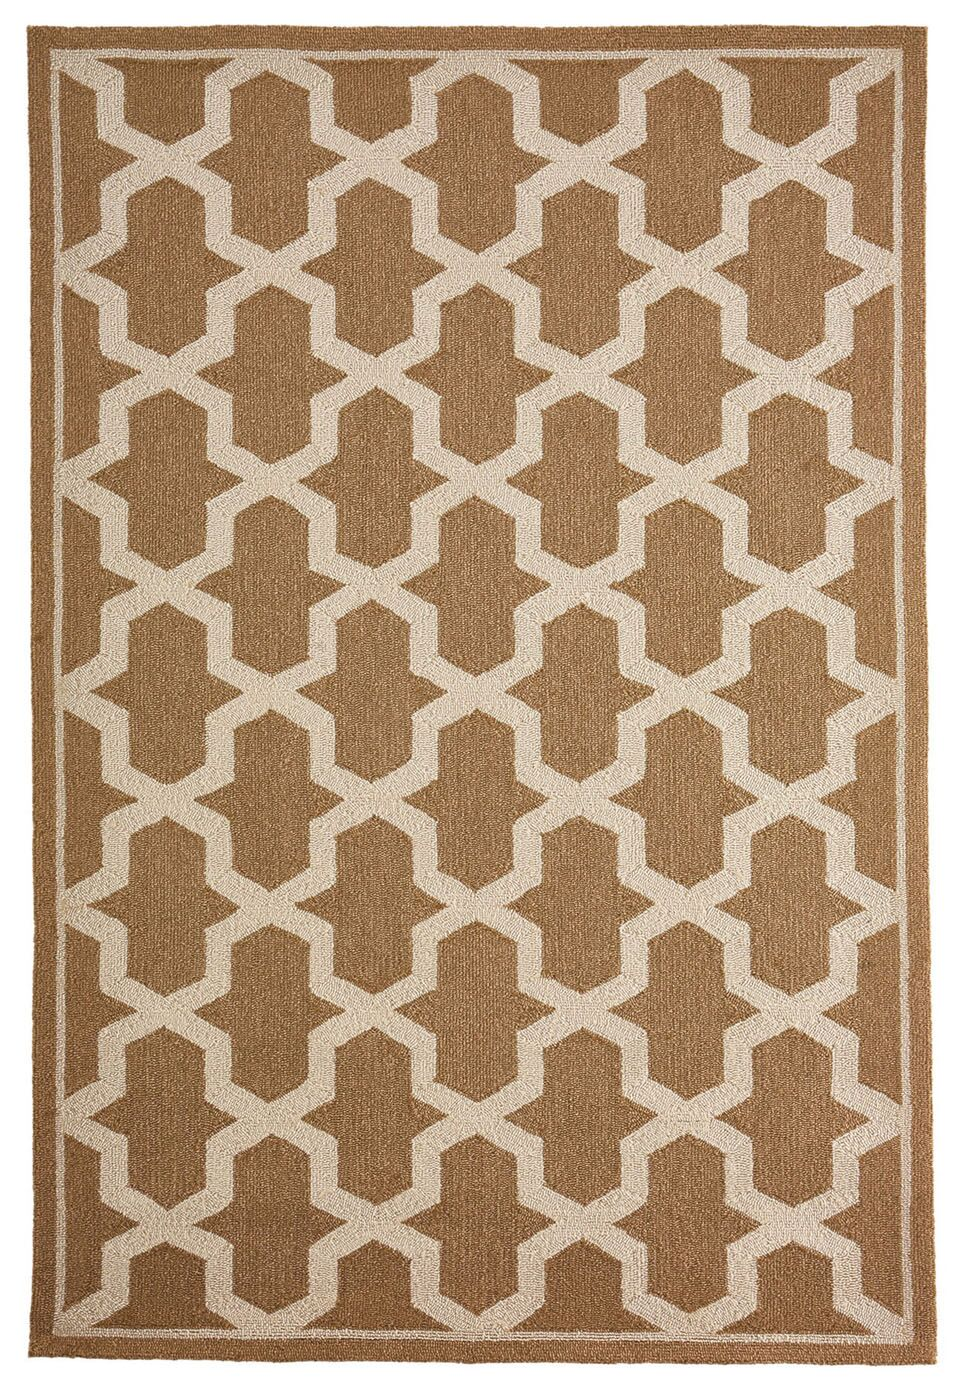 Enoch Geometric Hand-Woven Camel Indoor/Outdoor Area Rug Rug Size: Rectangle 5' x 7'6